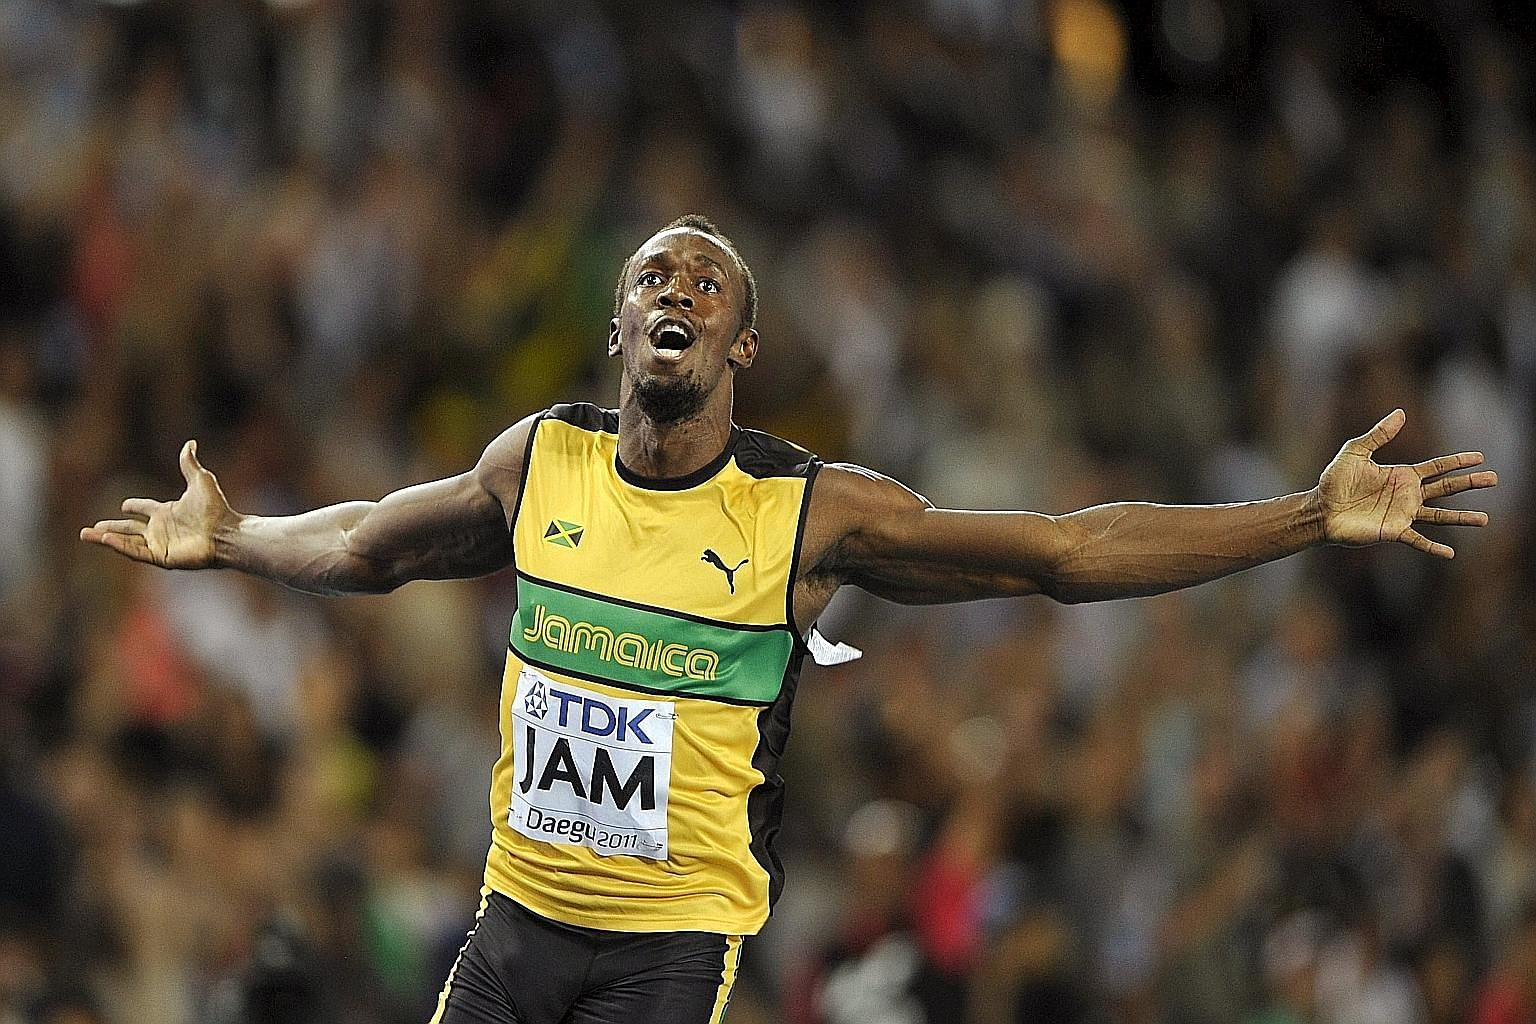 """Usain Bolt aims to become the first person to run the 200m in under 19 seconds. It is his """"main aim"""" at the Rio Games, and he says that such a historic feat """"would be a game-changer""""."""